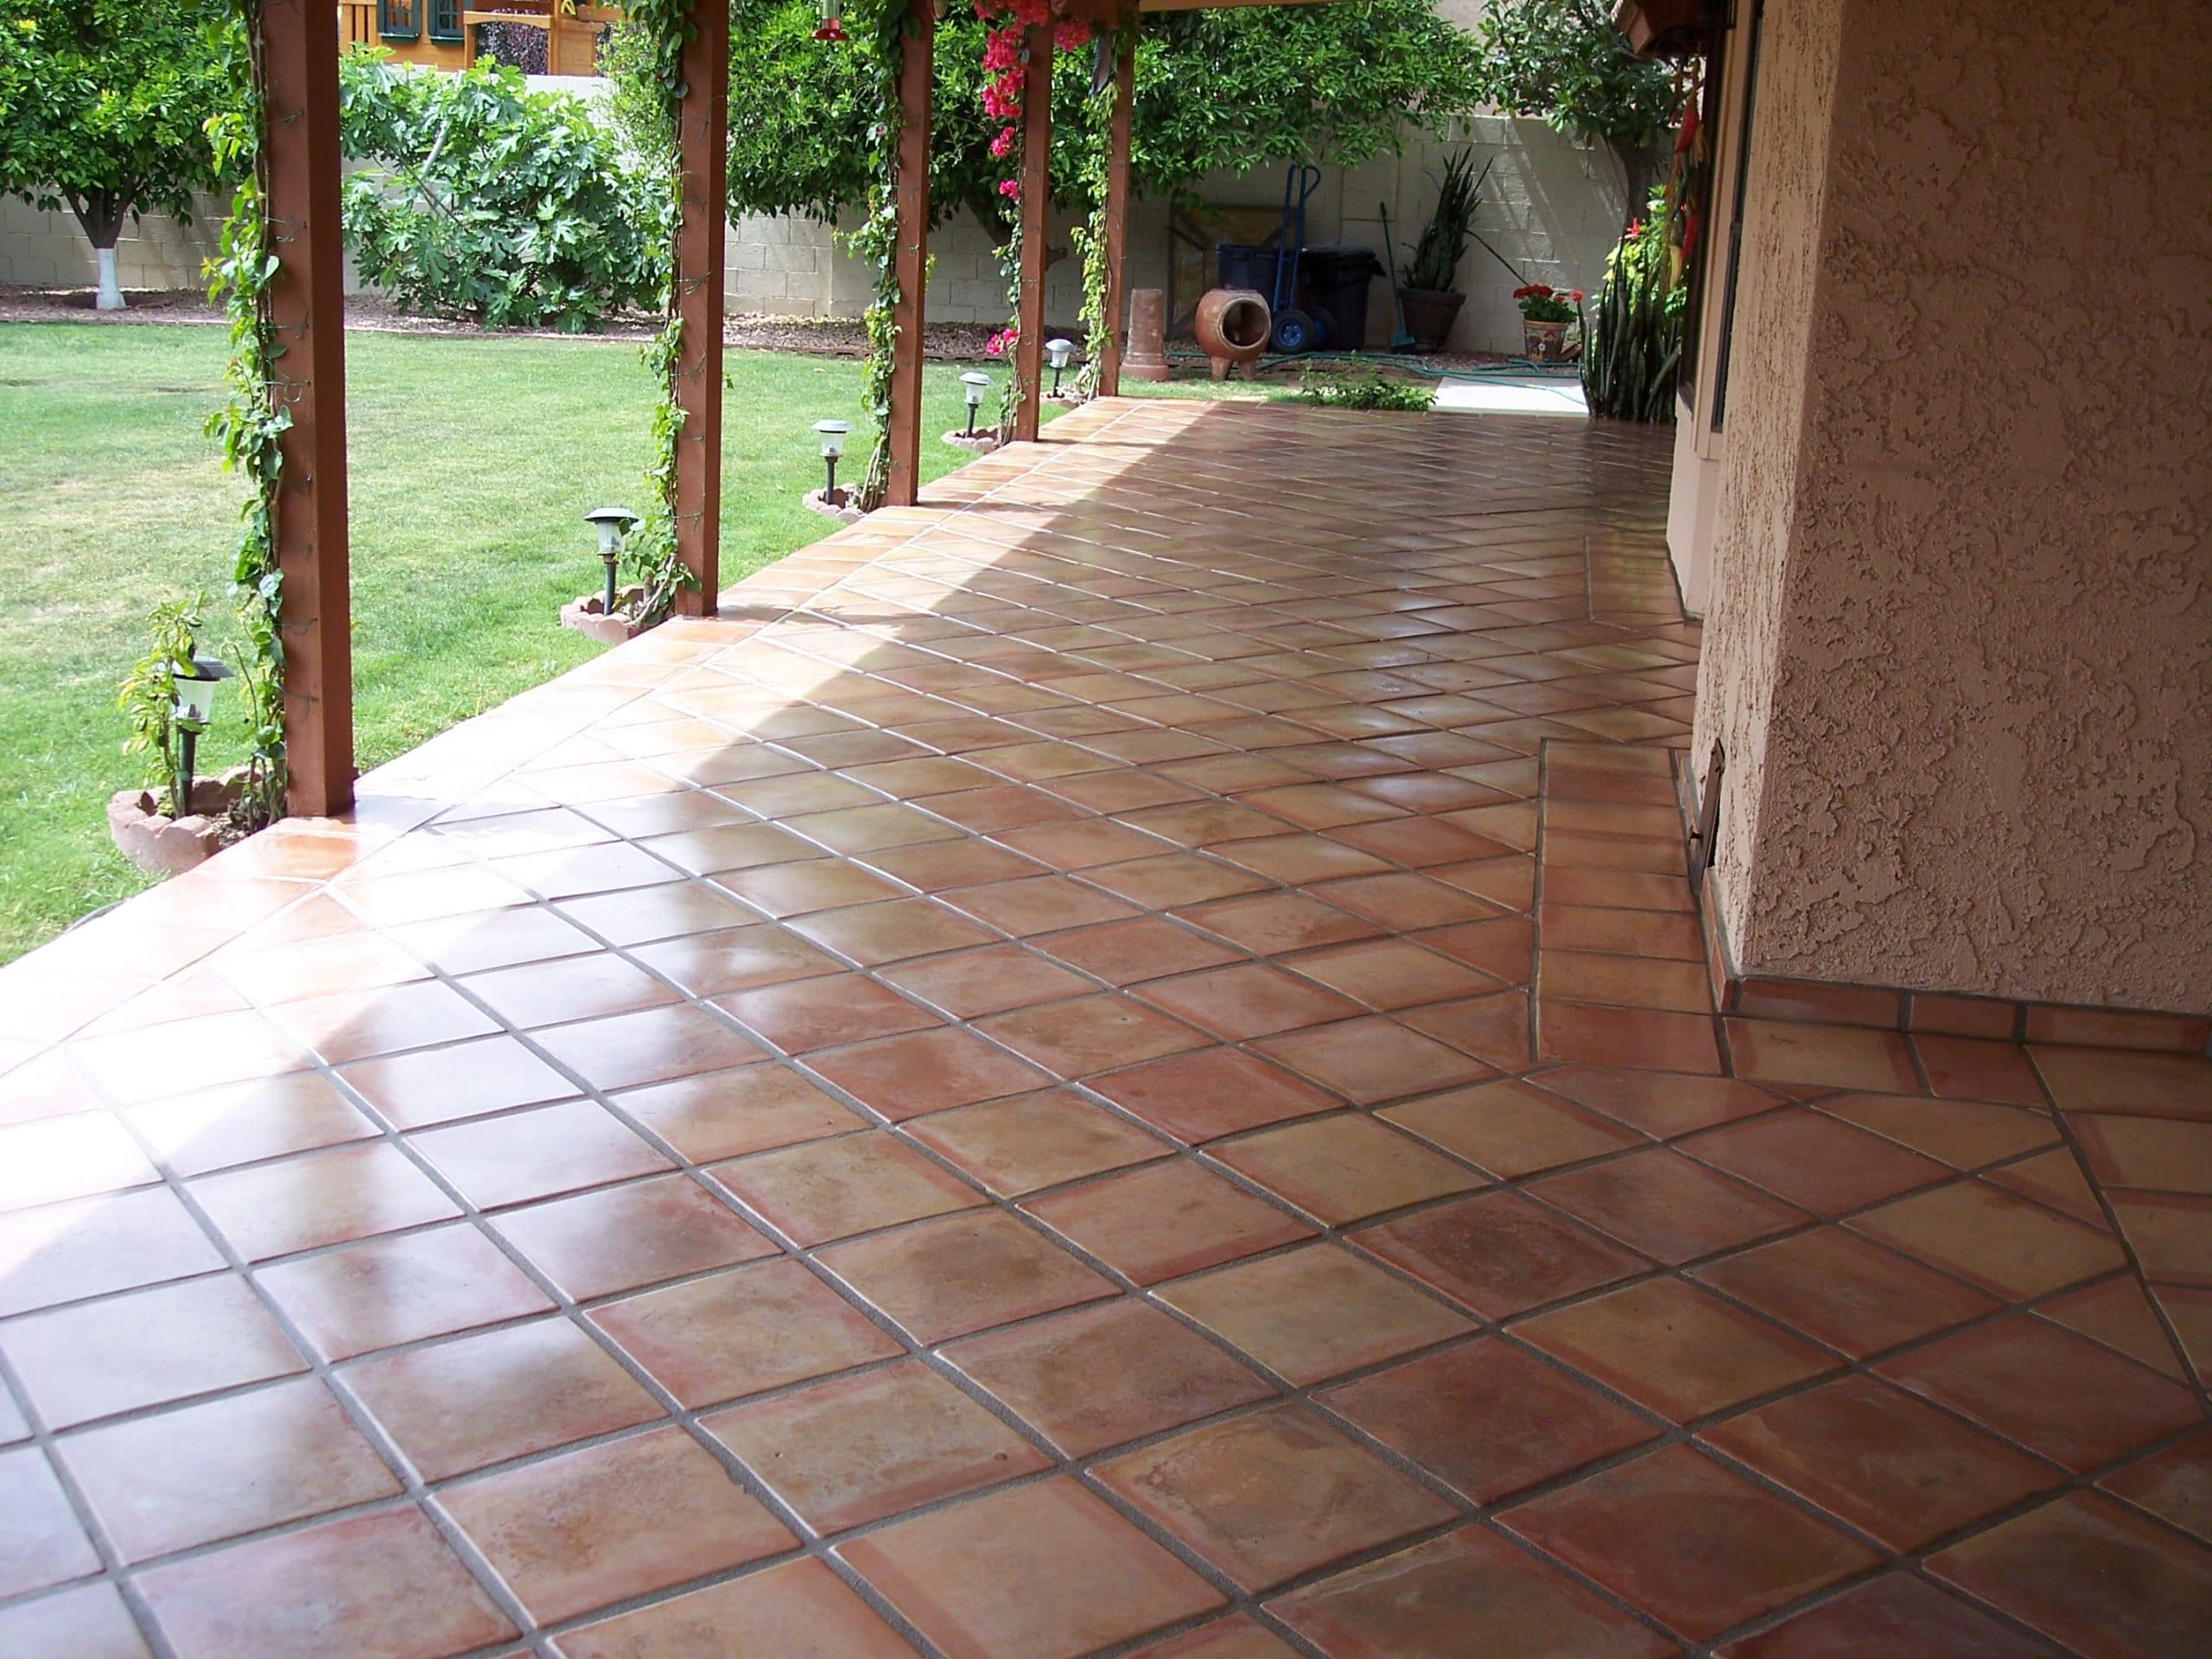 ultimate guide to scottsdale outdoor tile. ultimate guide to scottsdale outdoor tile  desert tile and grout care